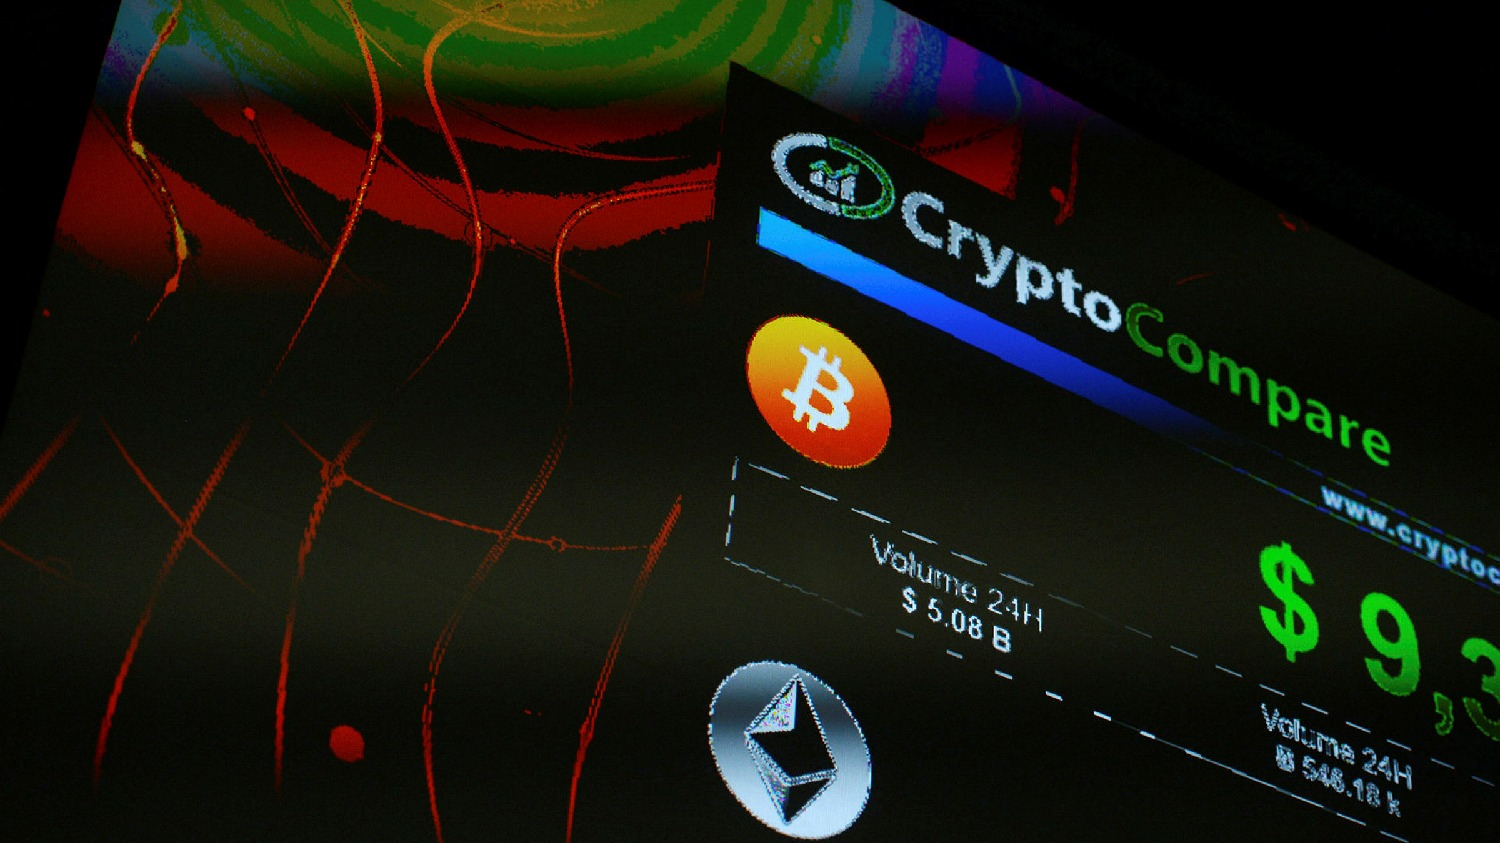 ft.com - Chris Flood - Switzerland gives green light to first cryptocurrency ETP